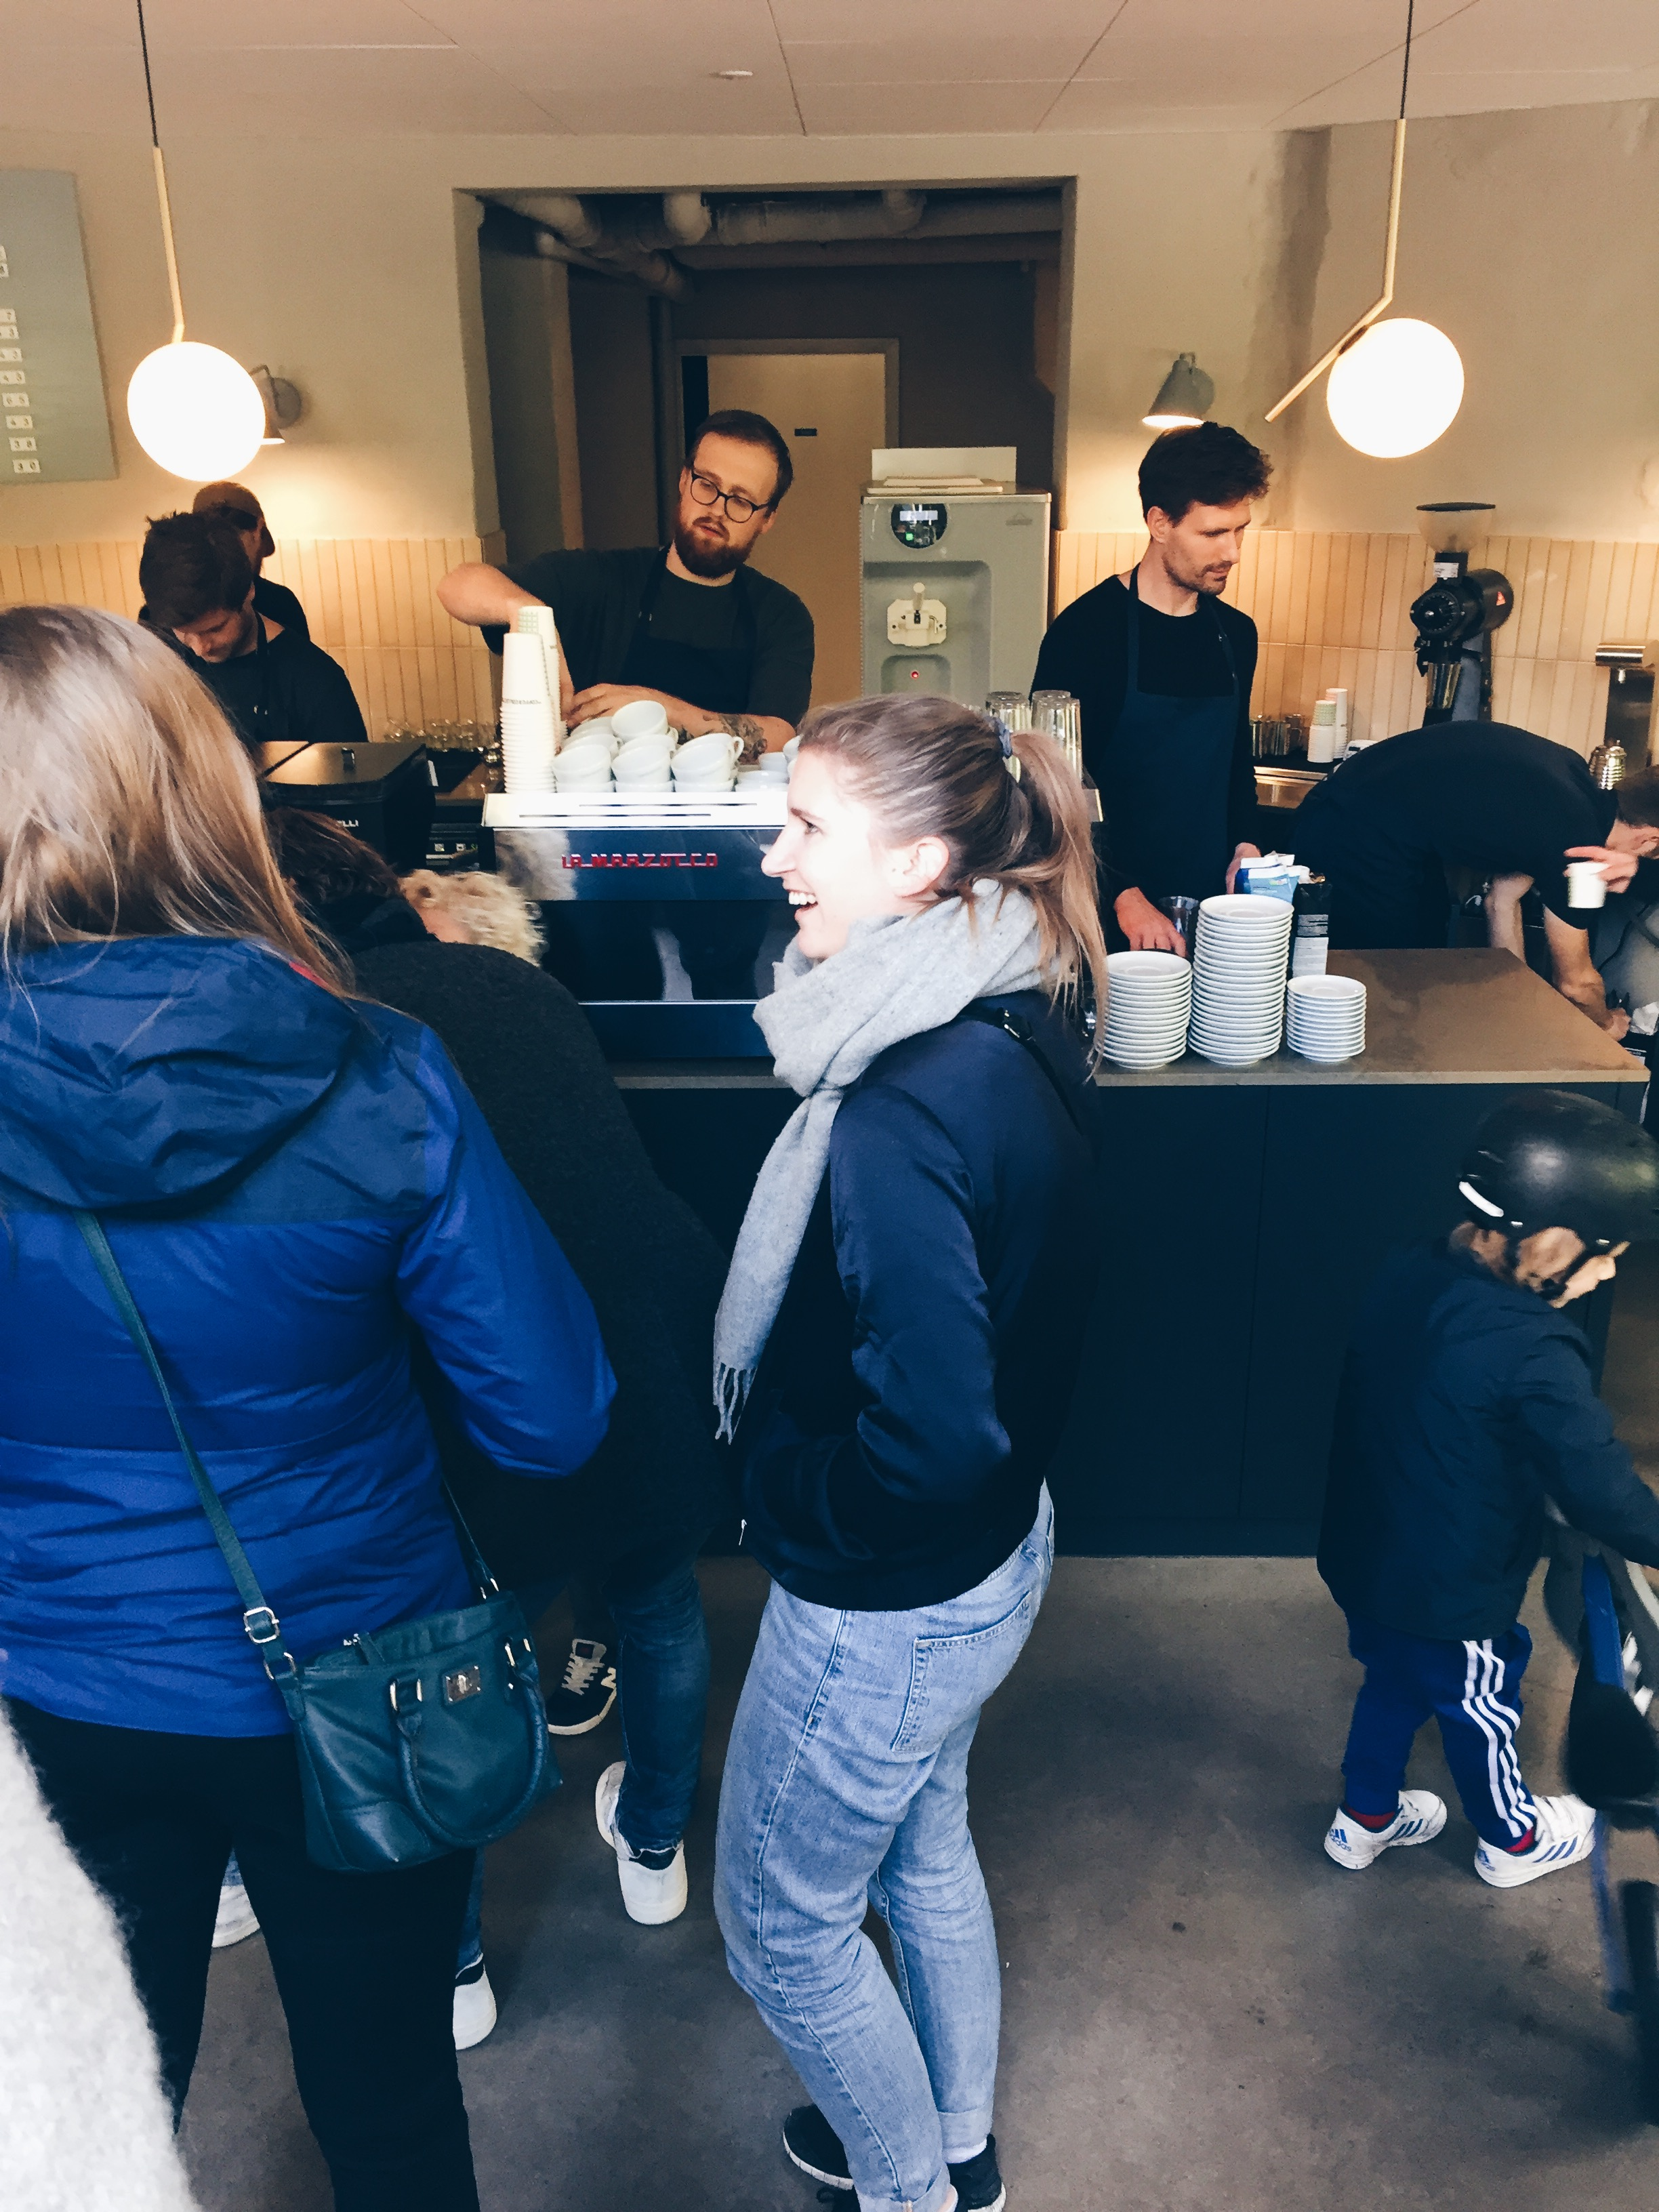 The Coffee Collective - Read about it here.